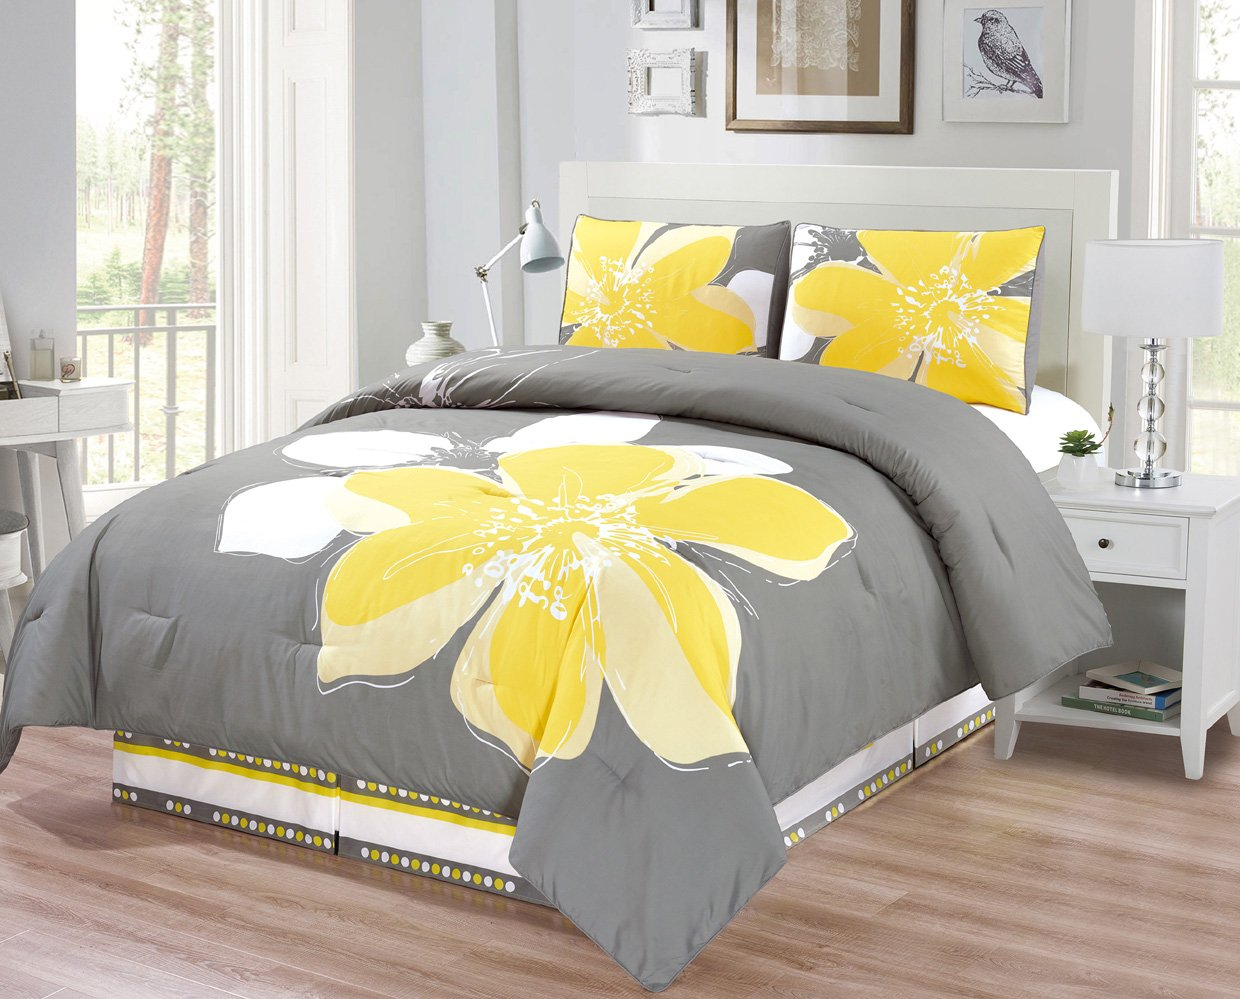 4-Piece Fine printed Comforter Set Reversible Goose Down Alternative Bedding KING (Yellow, Grey, White